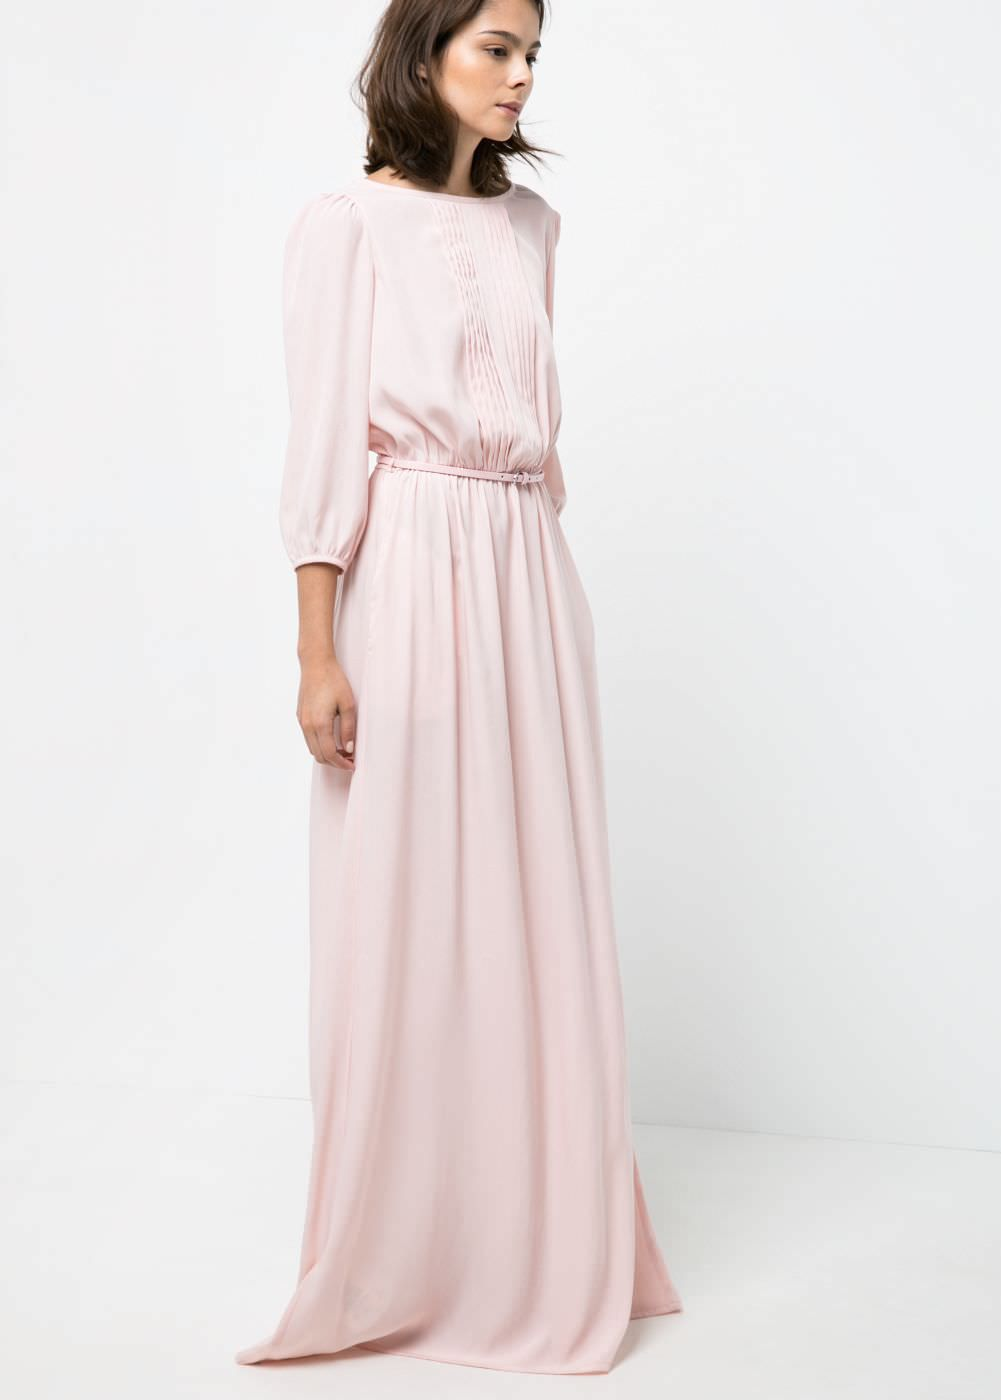 7 affordable pink long dresses to wear to a wedding - LaiaMagazine